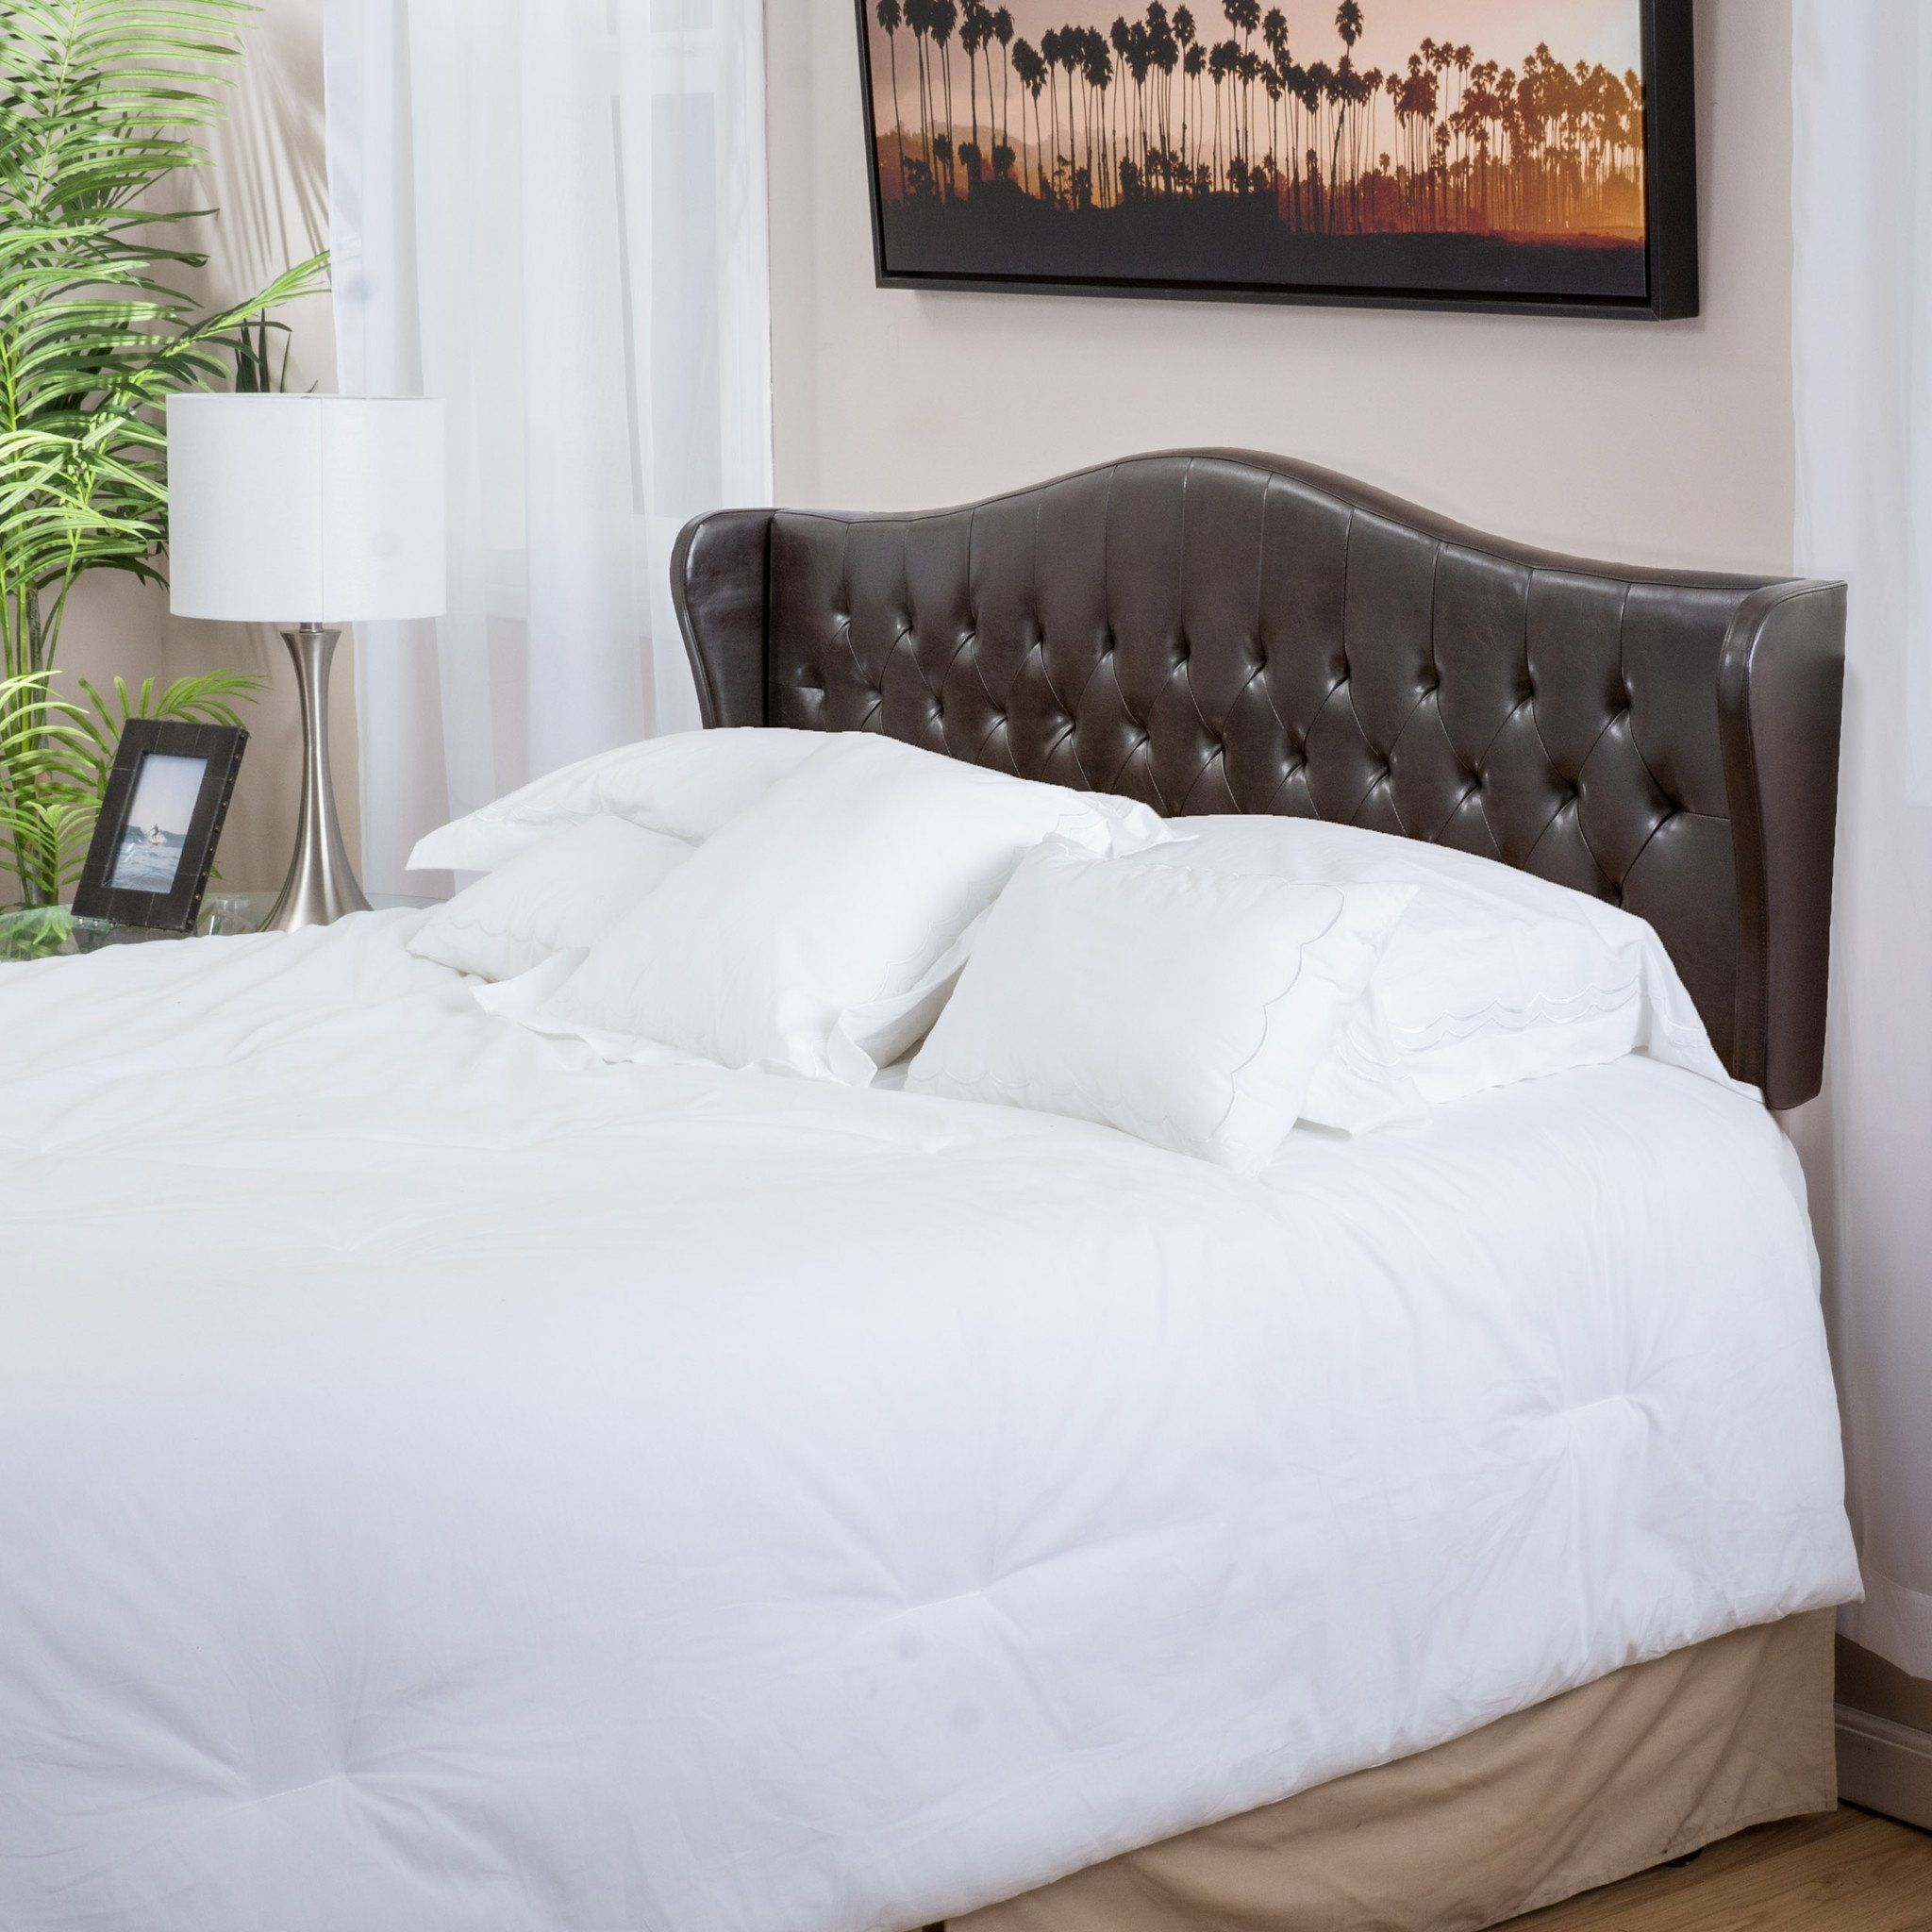 headboard makeover furnishings prod leather boshmo dorel top bedroom faux button awesome with lyric tufted home